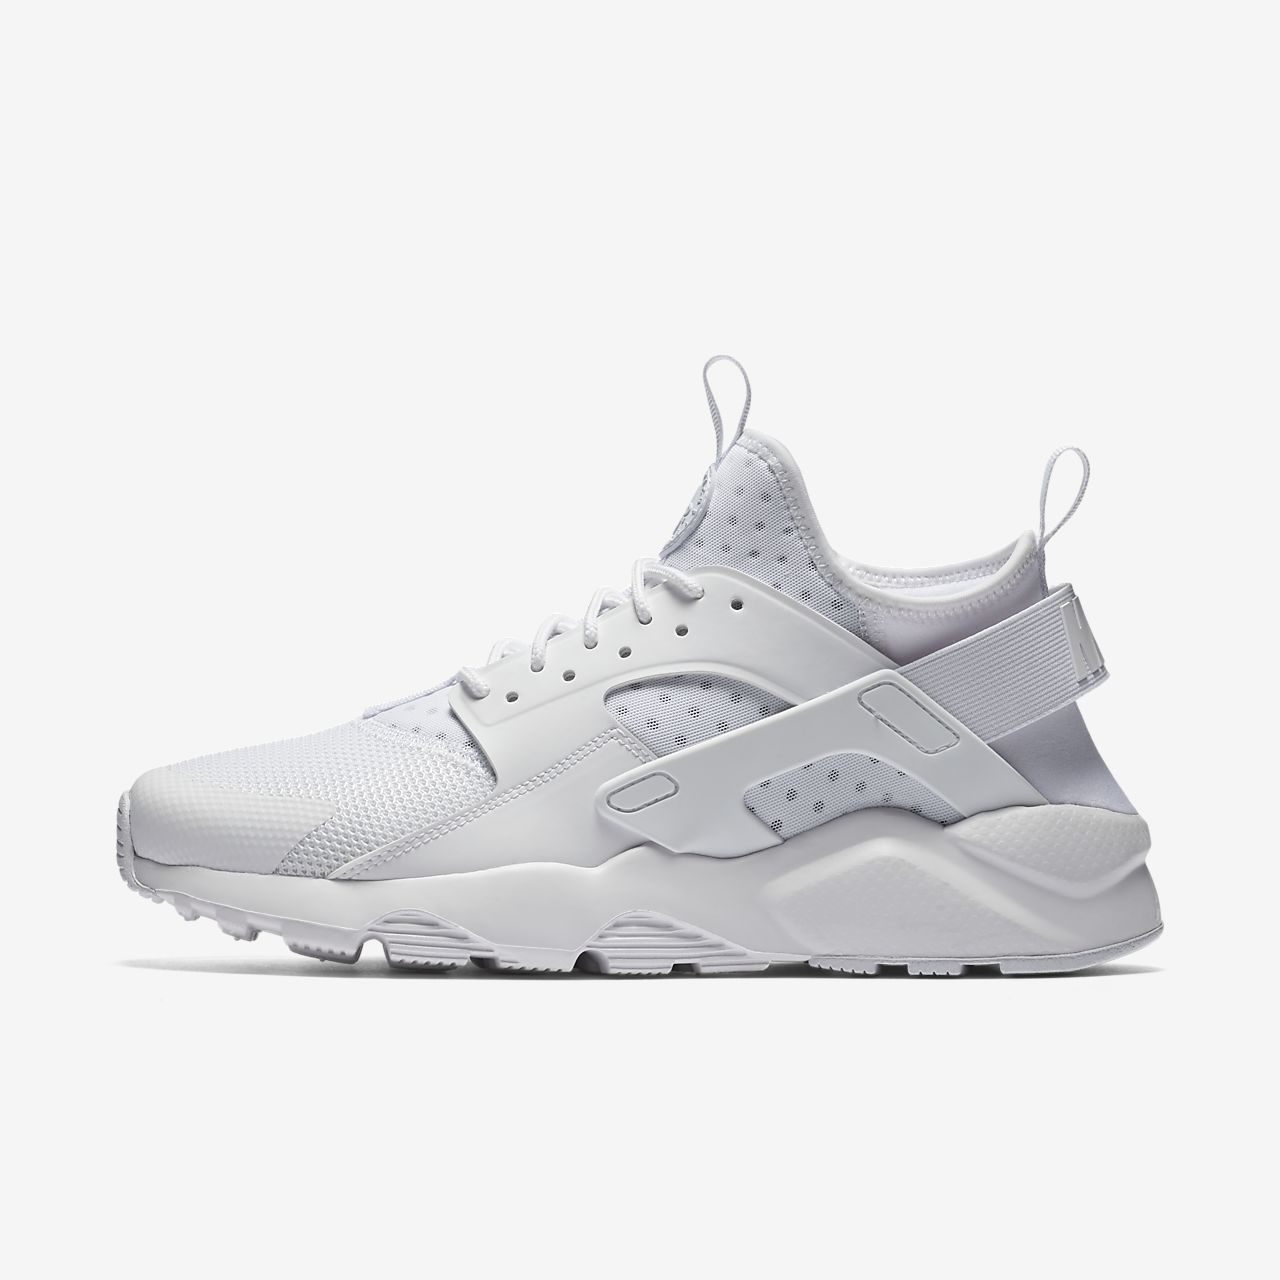 7c23c94373a Nike Air Huarache Ultra Men s Shoe. Nike.com AU